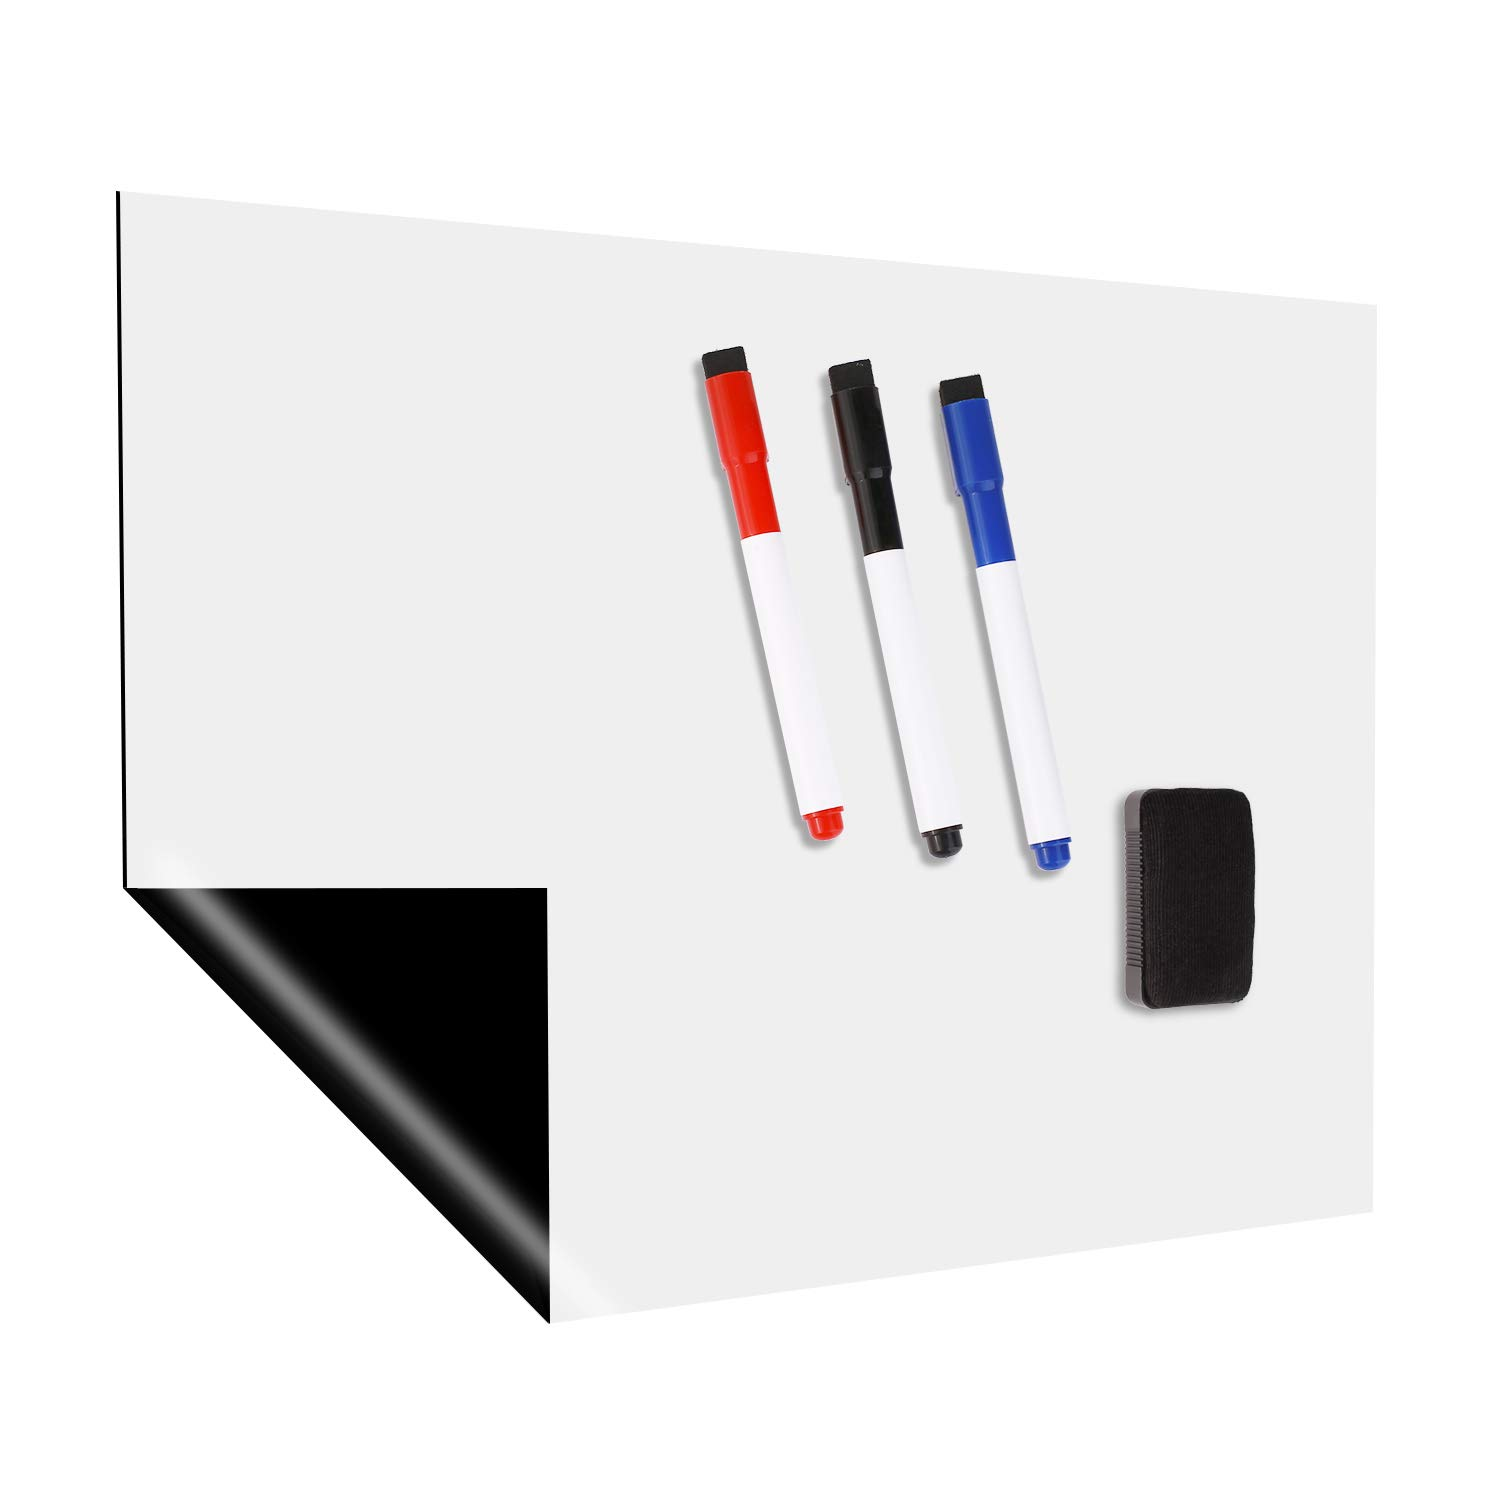 Magnetic Whiteboard Sheet, 17''×12'' Stain Resistant Dry Erase Board for Refrigerator, Fridge Whiteboard, White Message Board with 3 Colored Markers and 1 Eraser with Magnets by YUPY